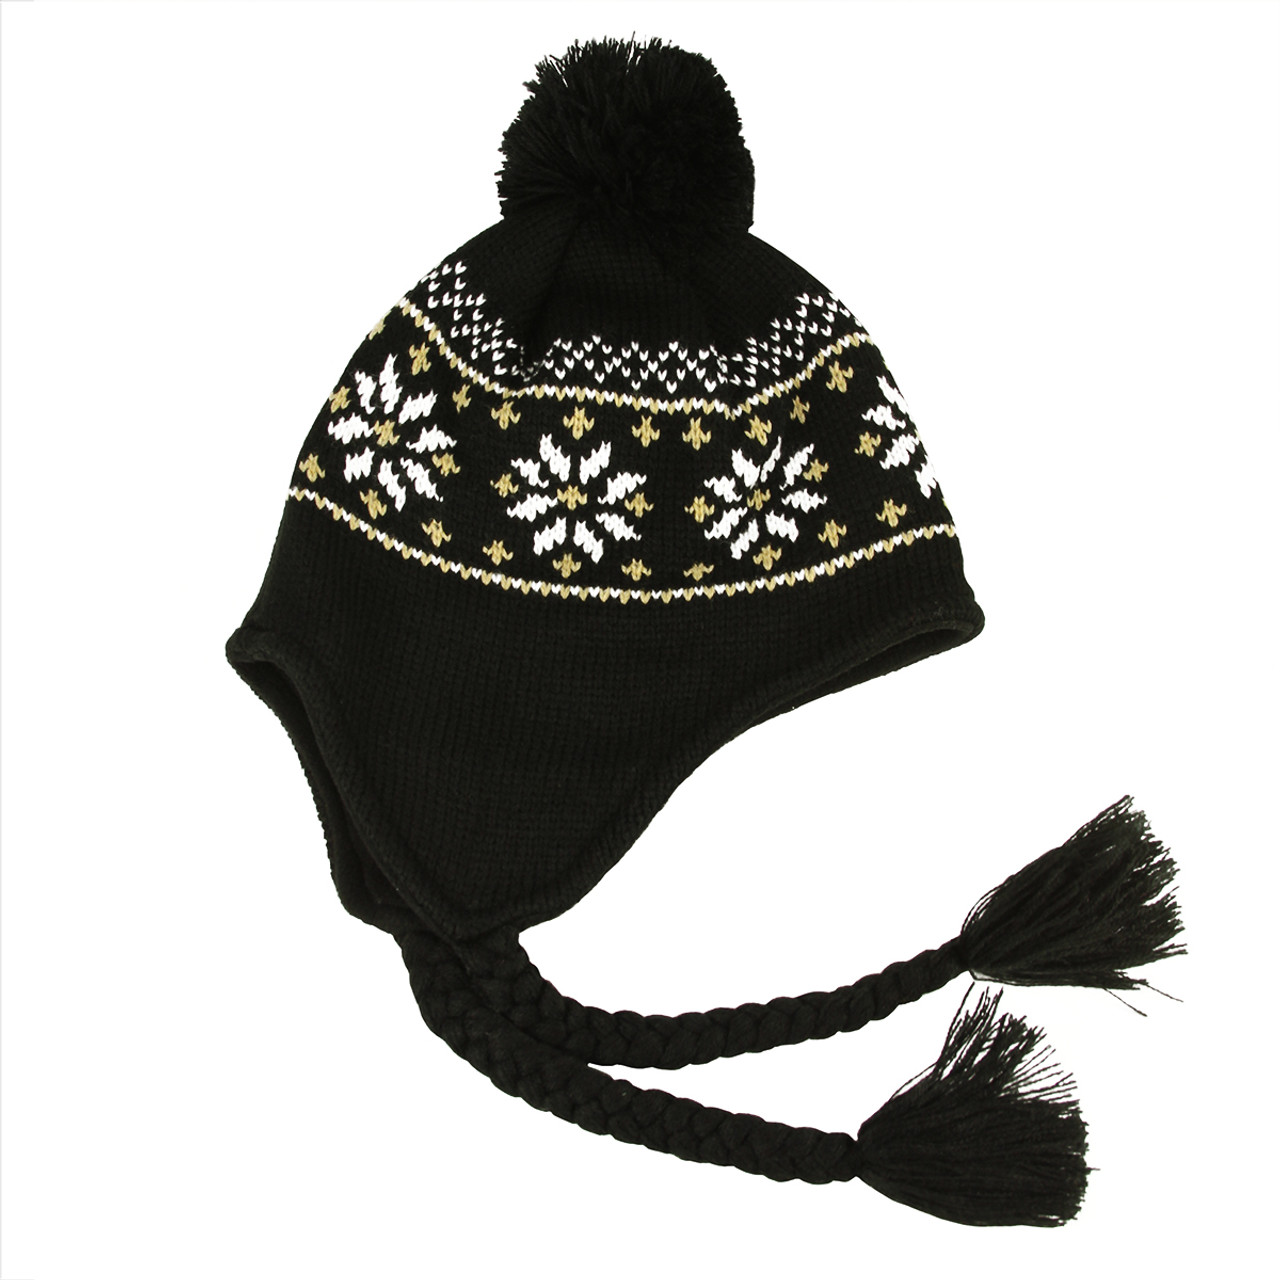 Unisex Black Jacquard Knit Winter Hat with Ear Flaps - One Size ... 618ae82d8de